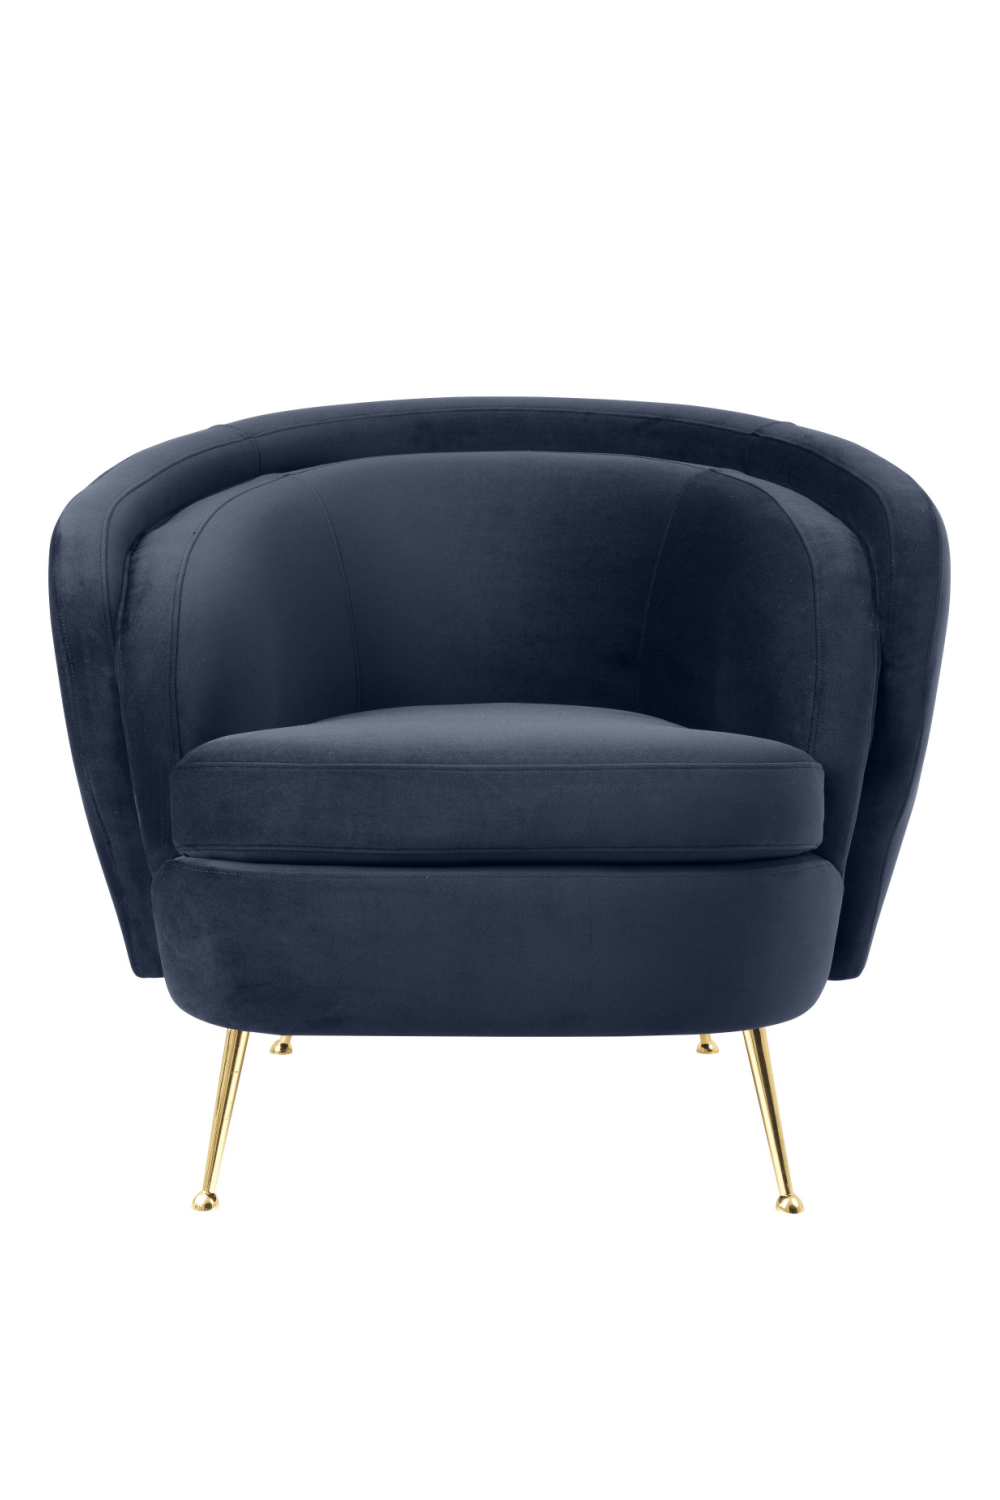 Blue Velvet Barrel Chair | Eichholtz Orion | #1 Eichholtz Retailer